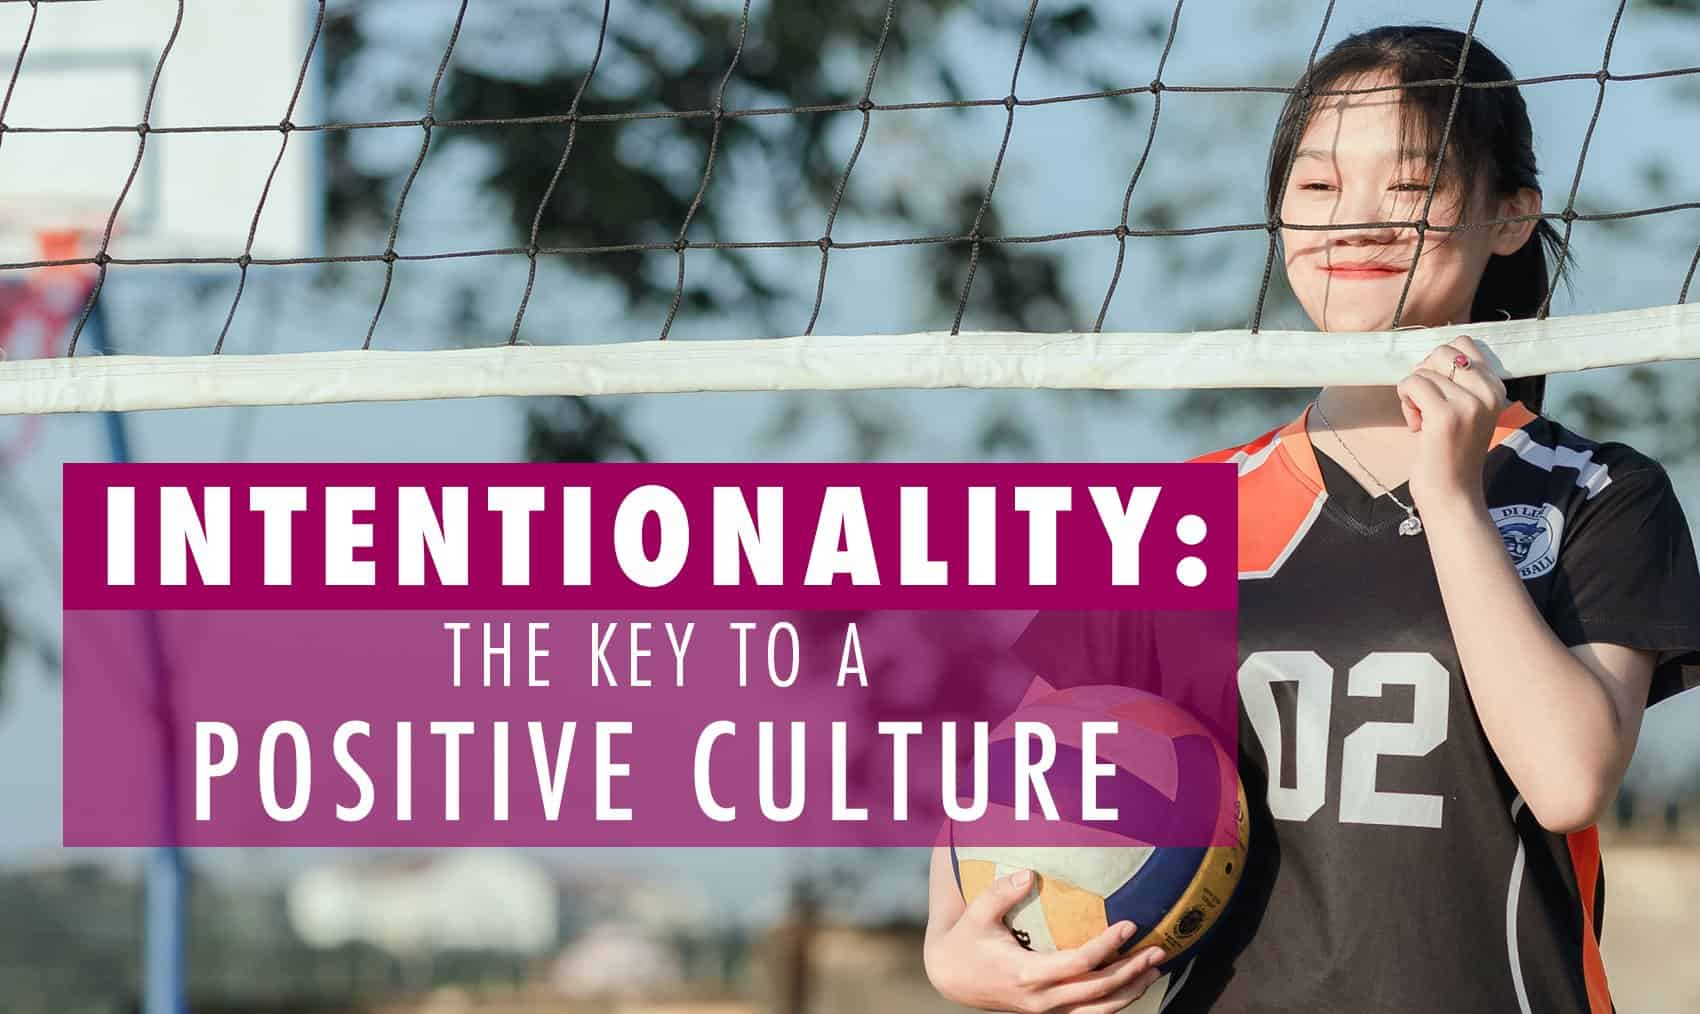 Intentionality: The key to a positive culture